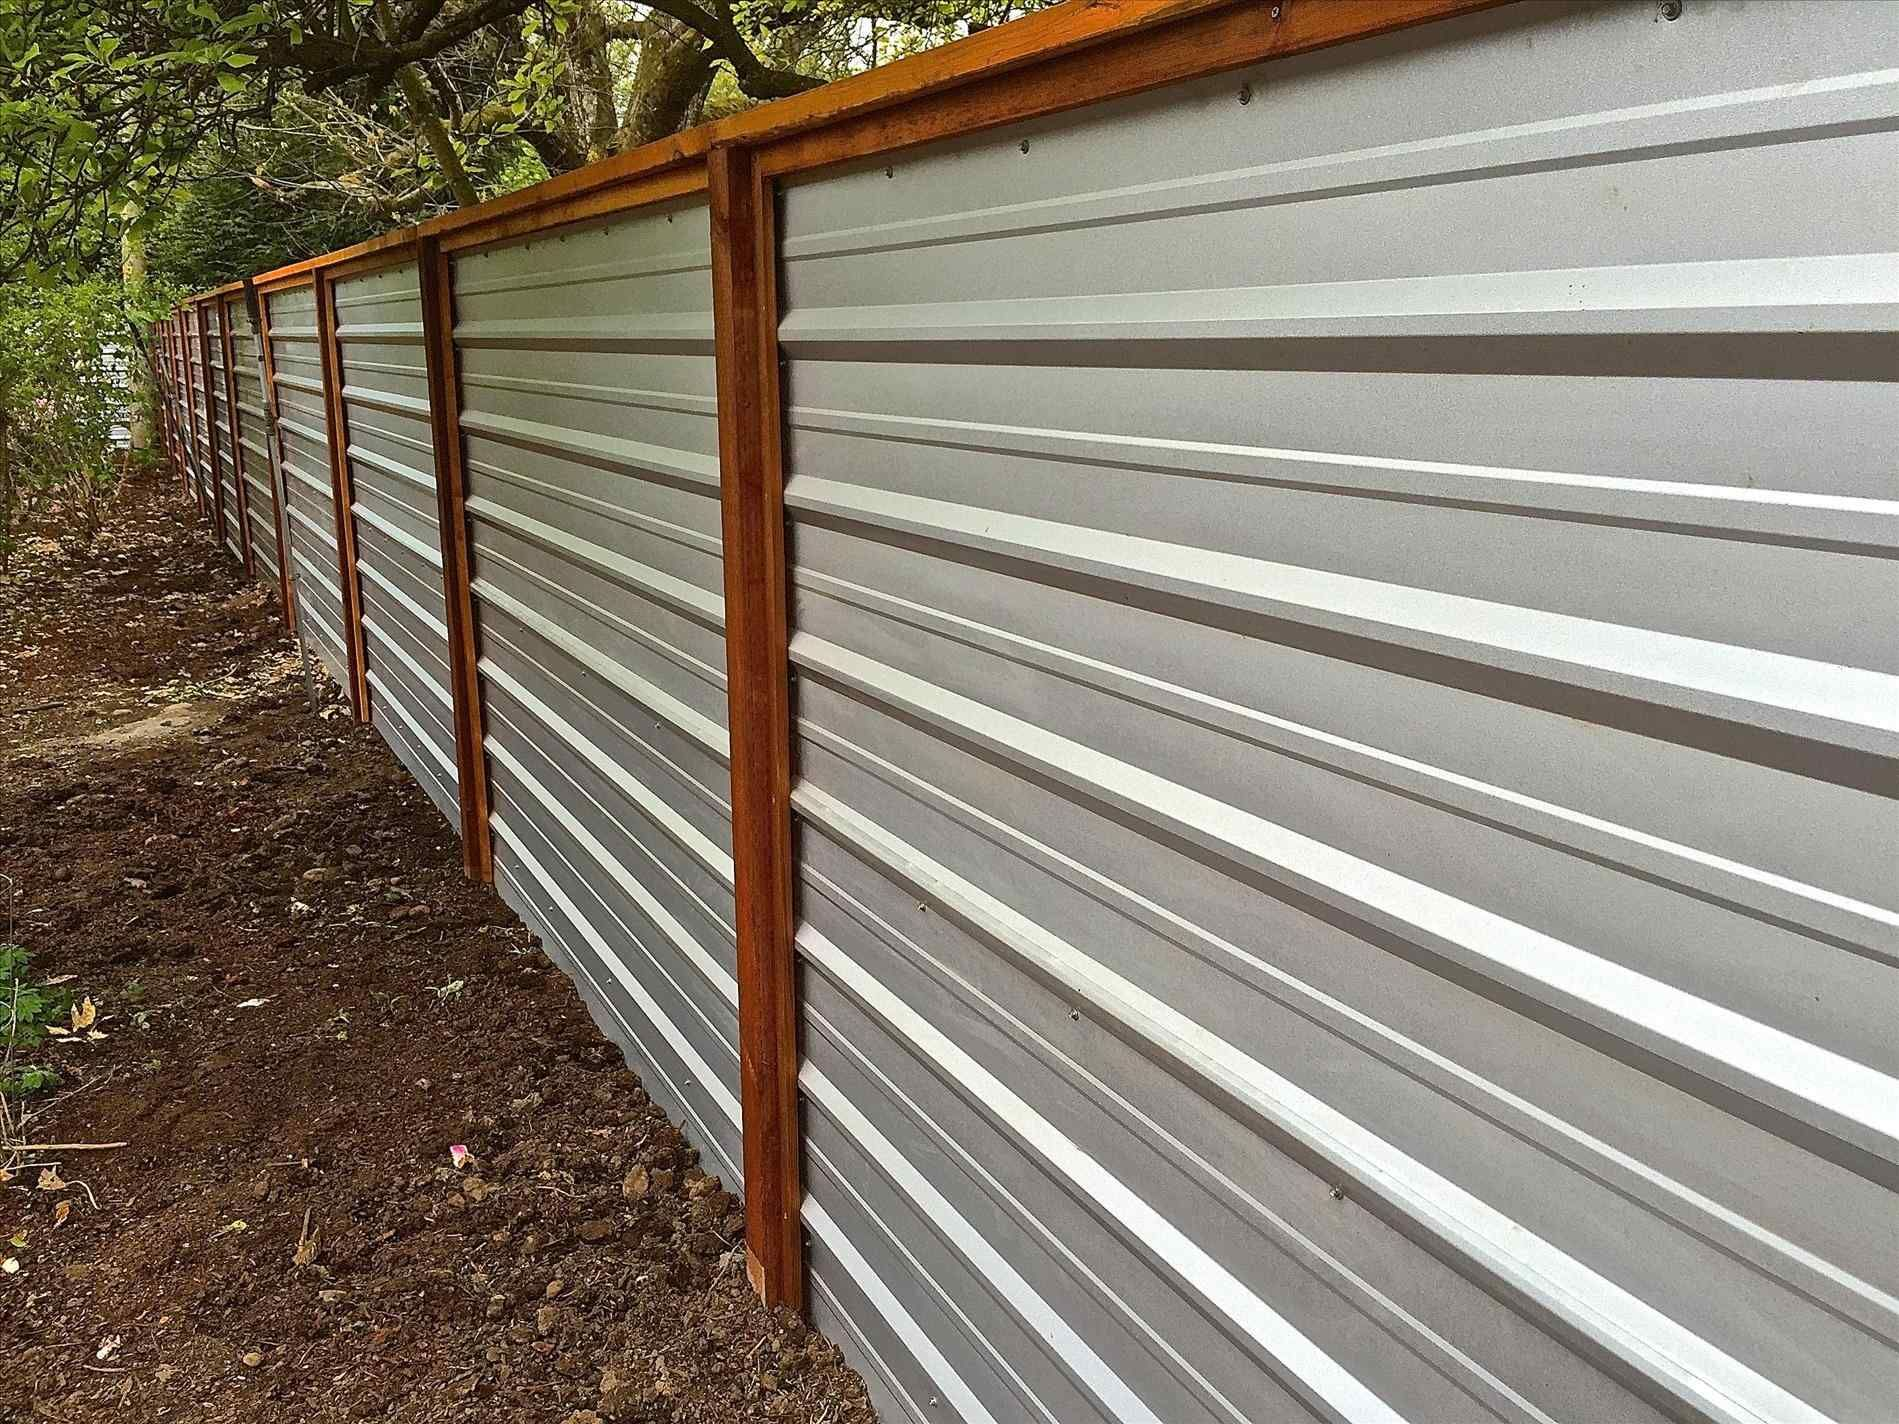 Galvanized Corrugated Metal Roofing Panels Home Roof Ideas